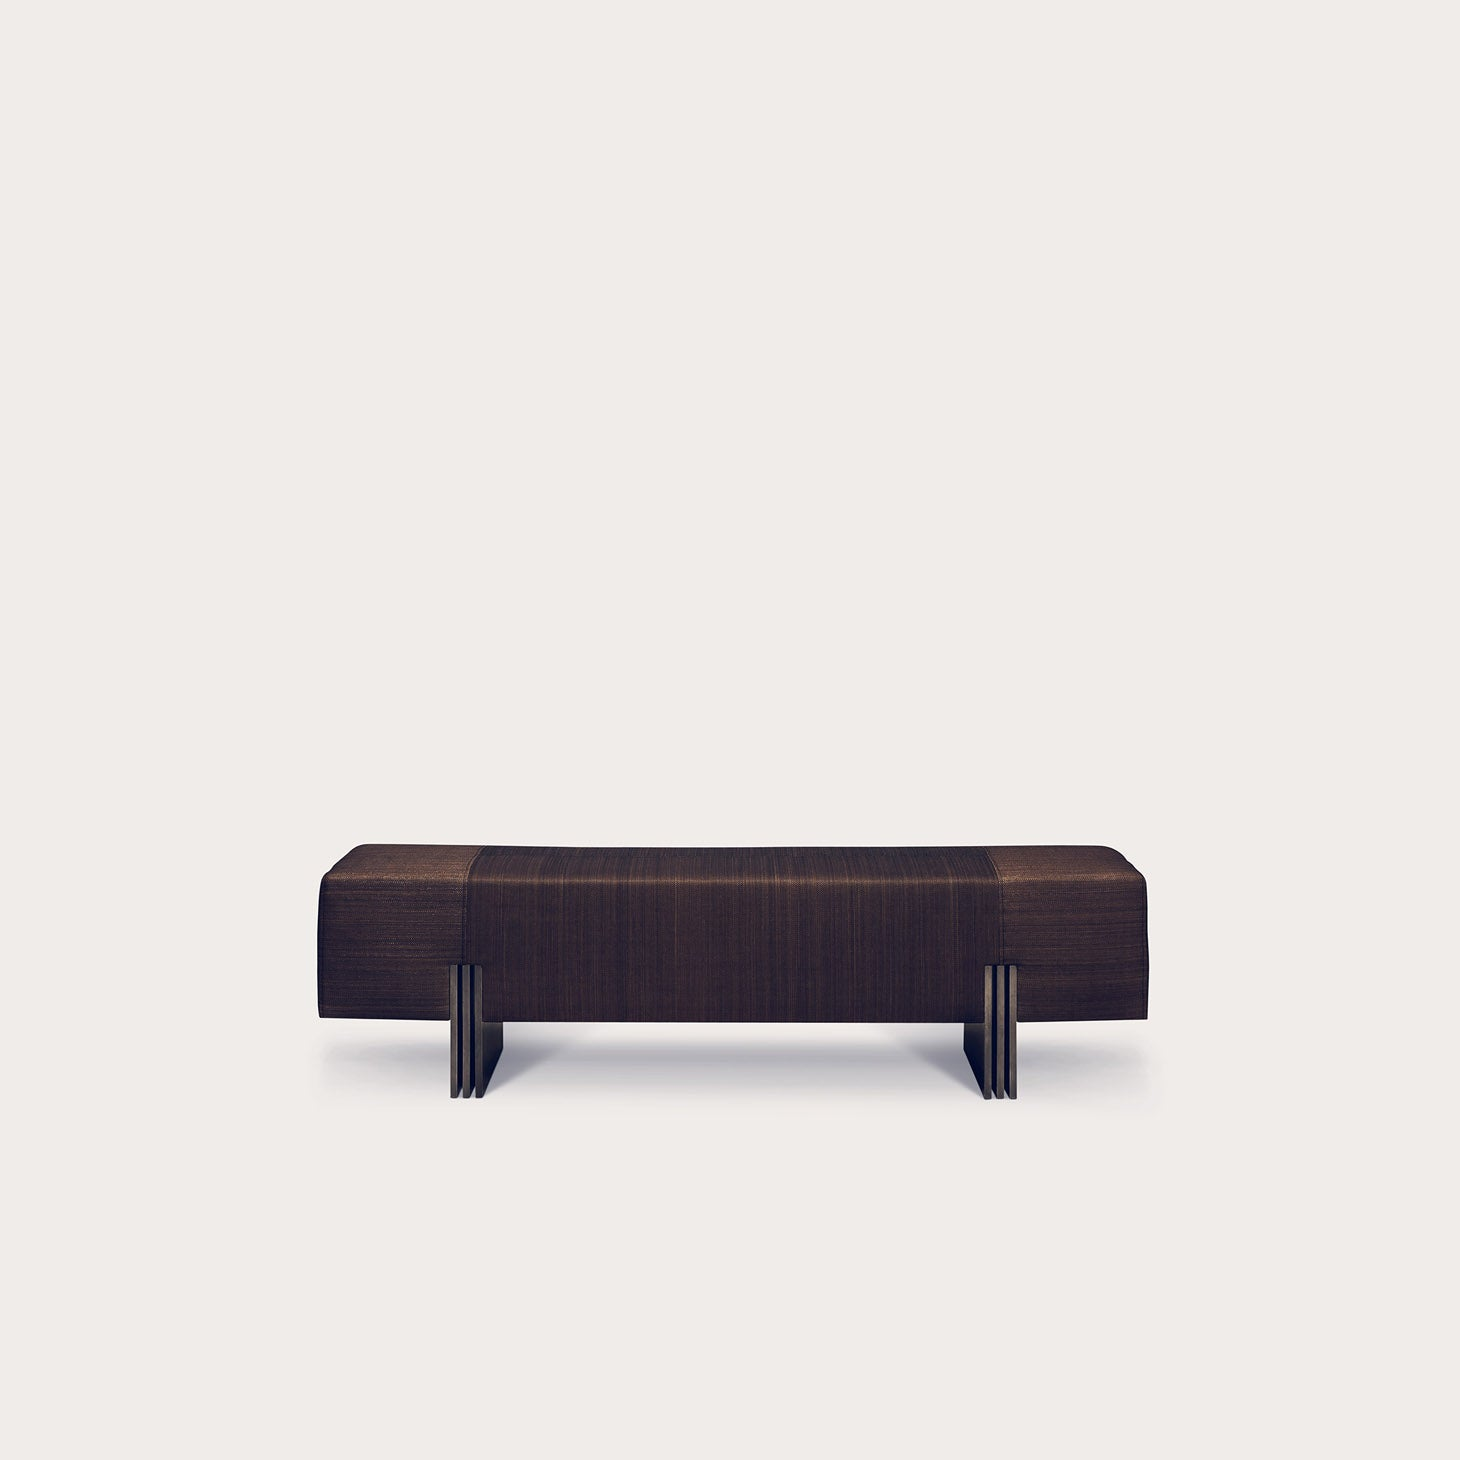 APUA Seating Bruno Moinard Designer Furniture Sku: 773-300-10000